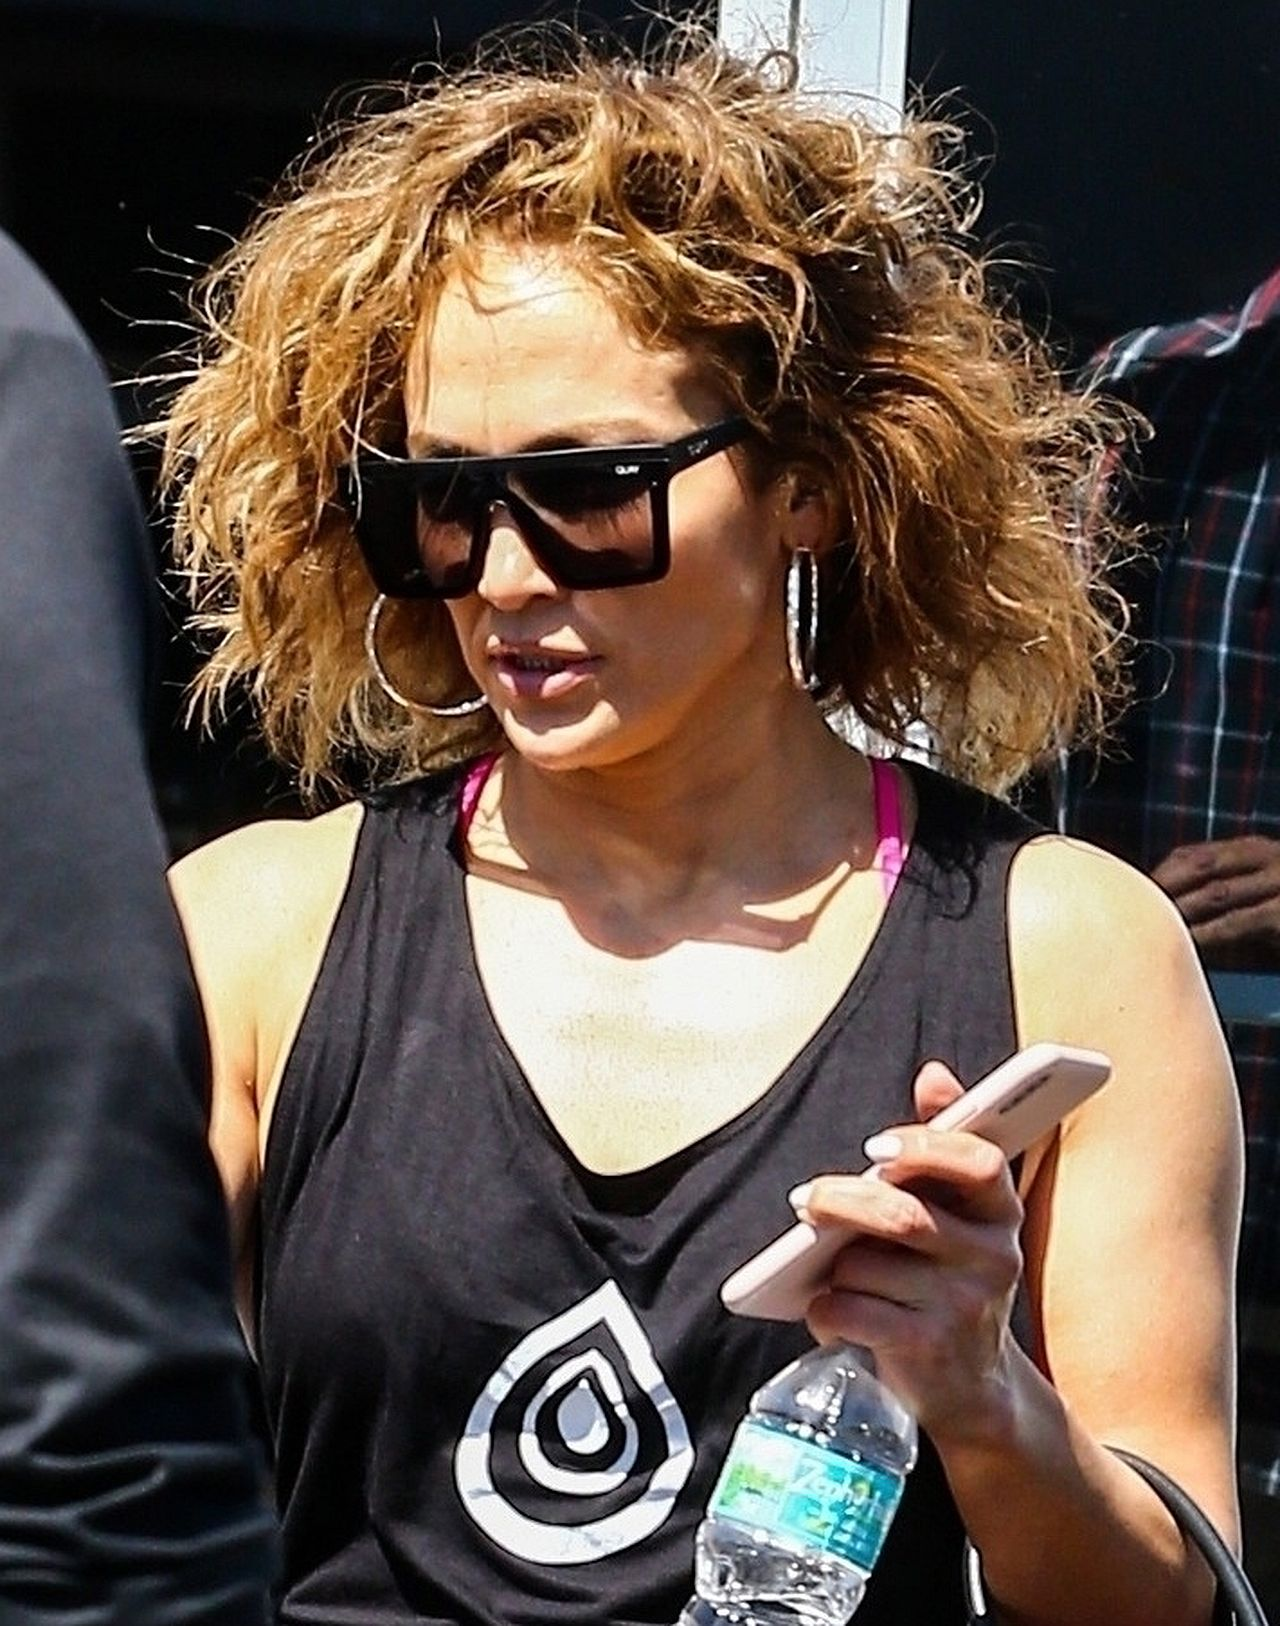 *EXCLUSIVE* Jennifer Lopez sports a curly new hairstyle while leaving the gym Jennifer Lopez